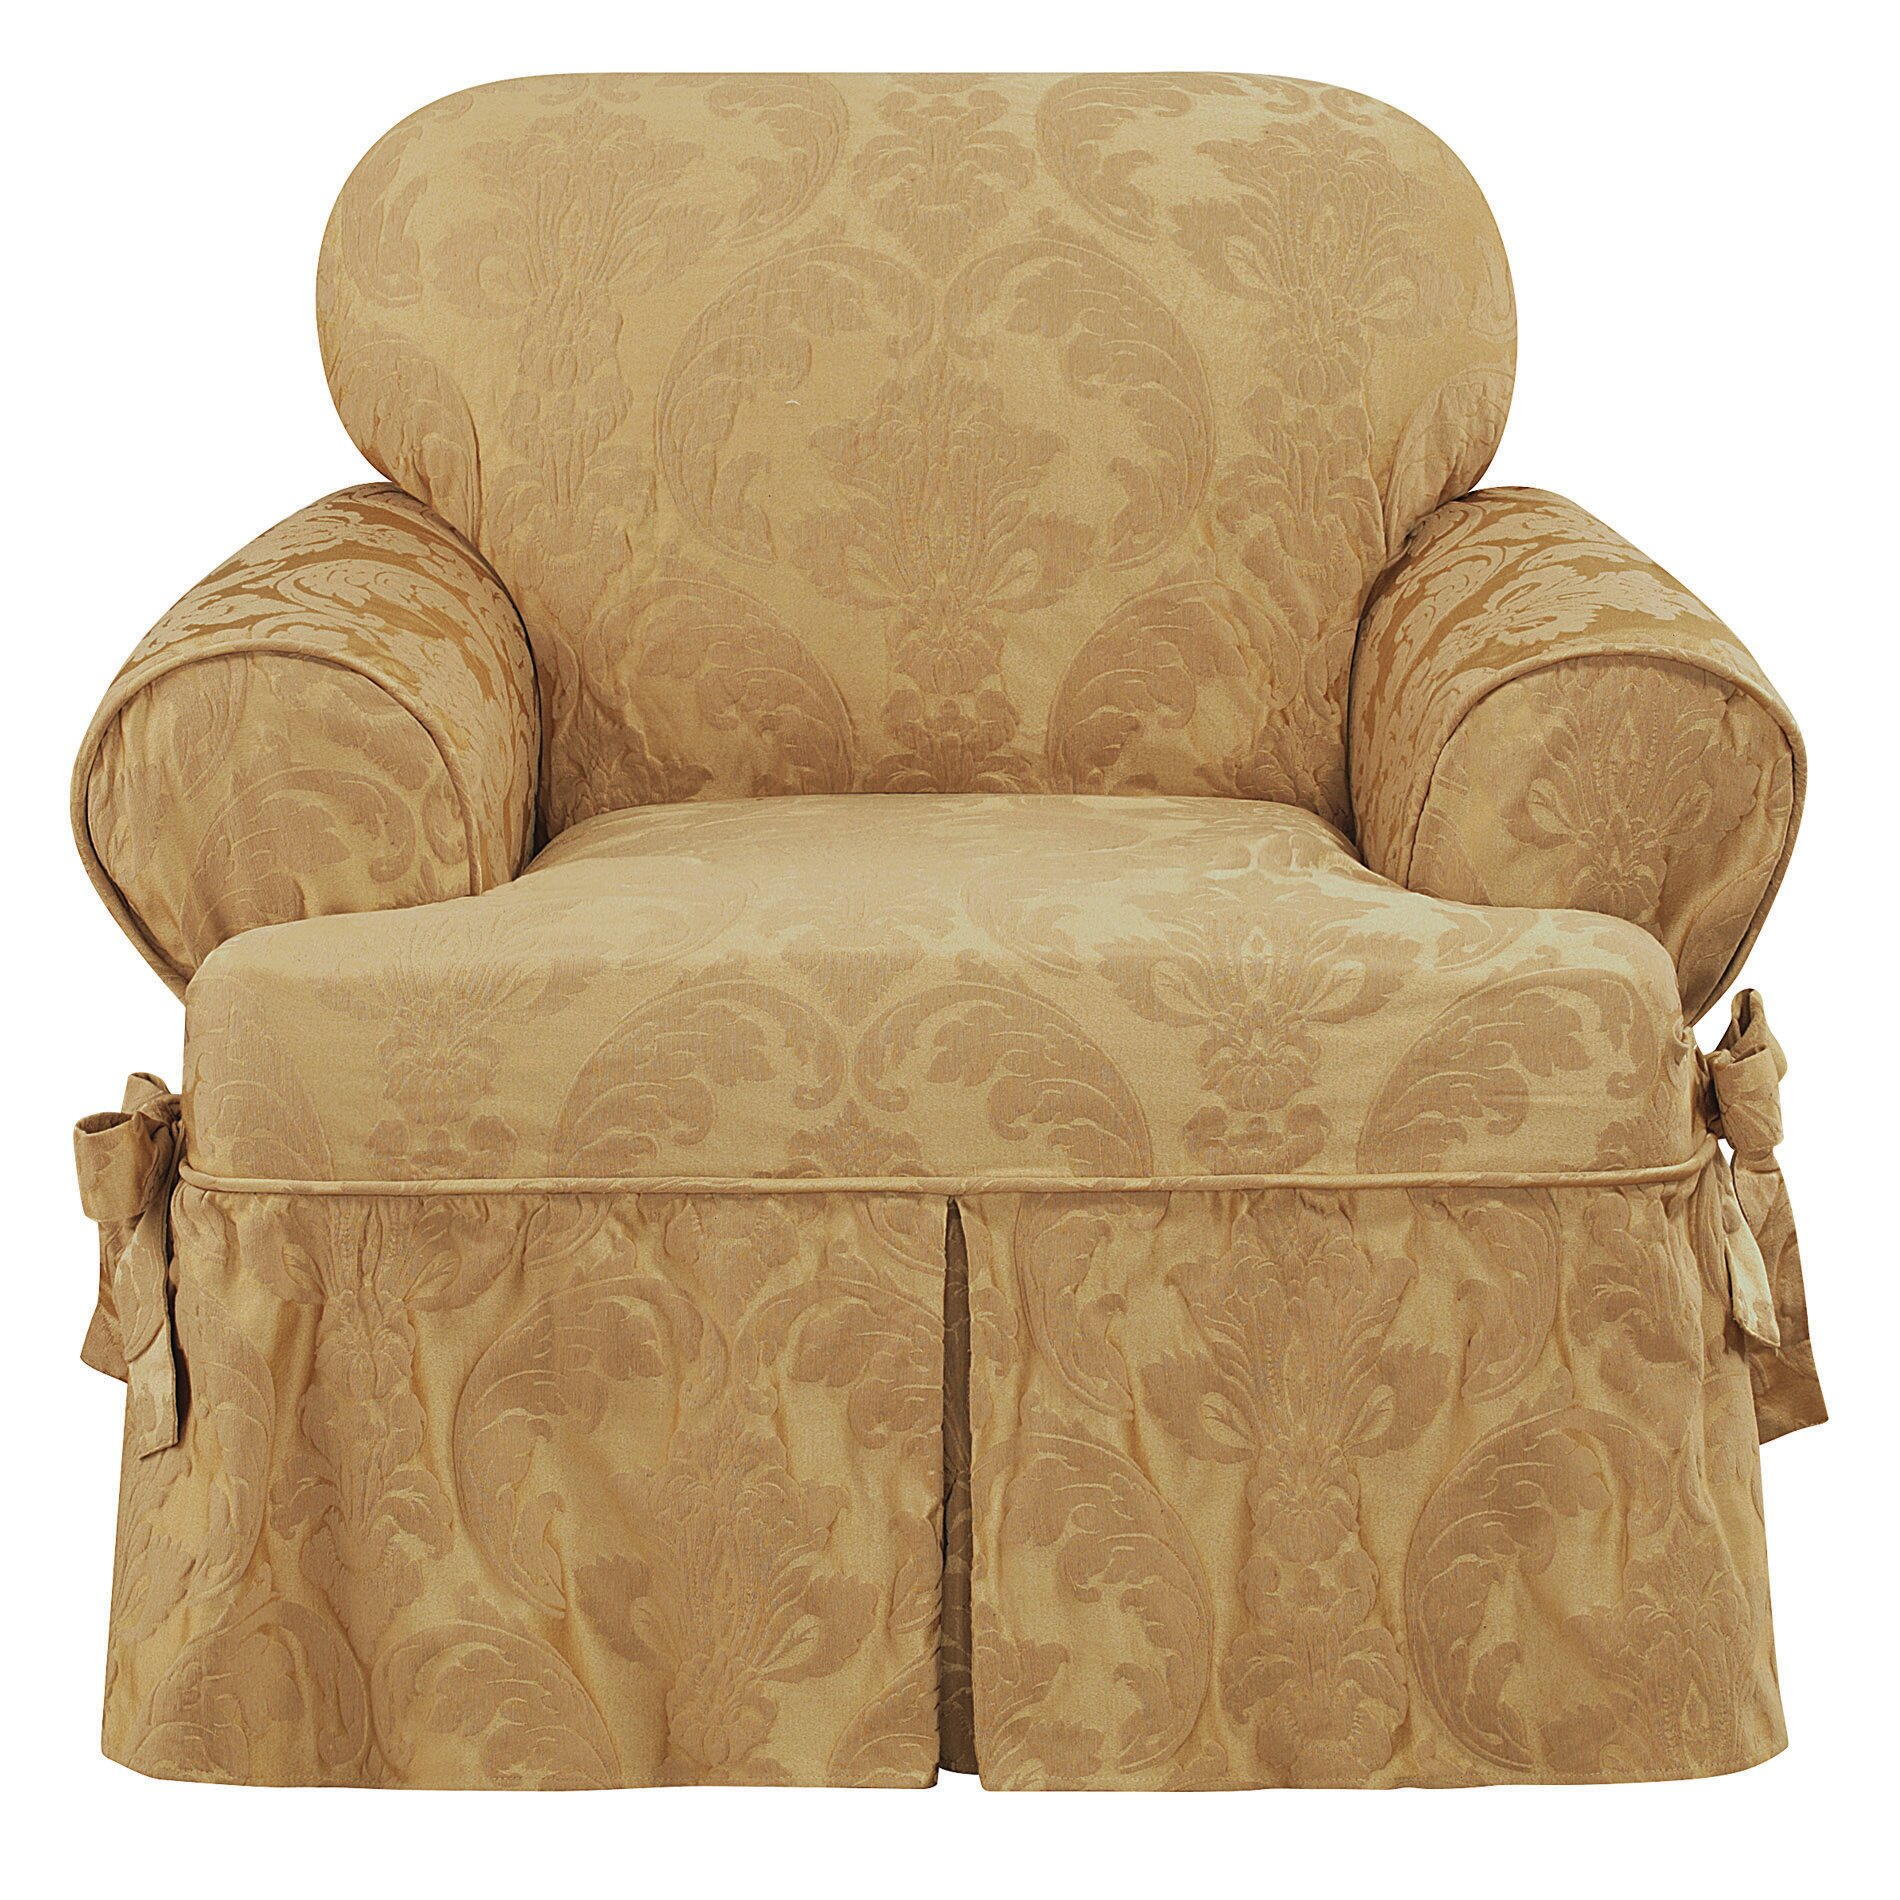 Sure Fit Matelasse Damask Chair T Cushion Slipcover Ebay